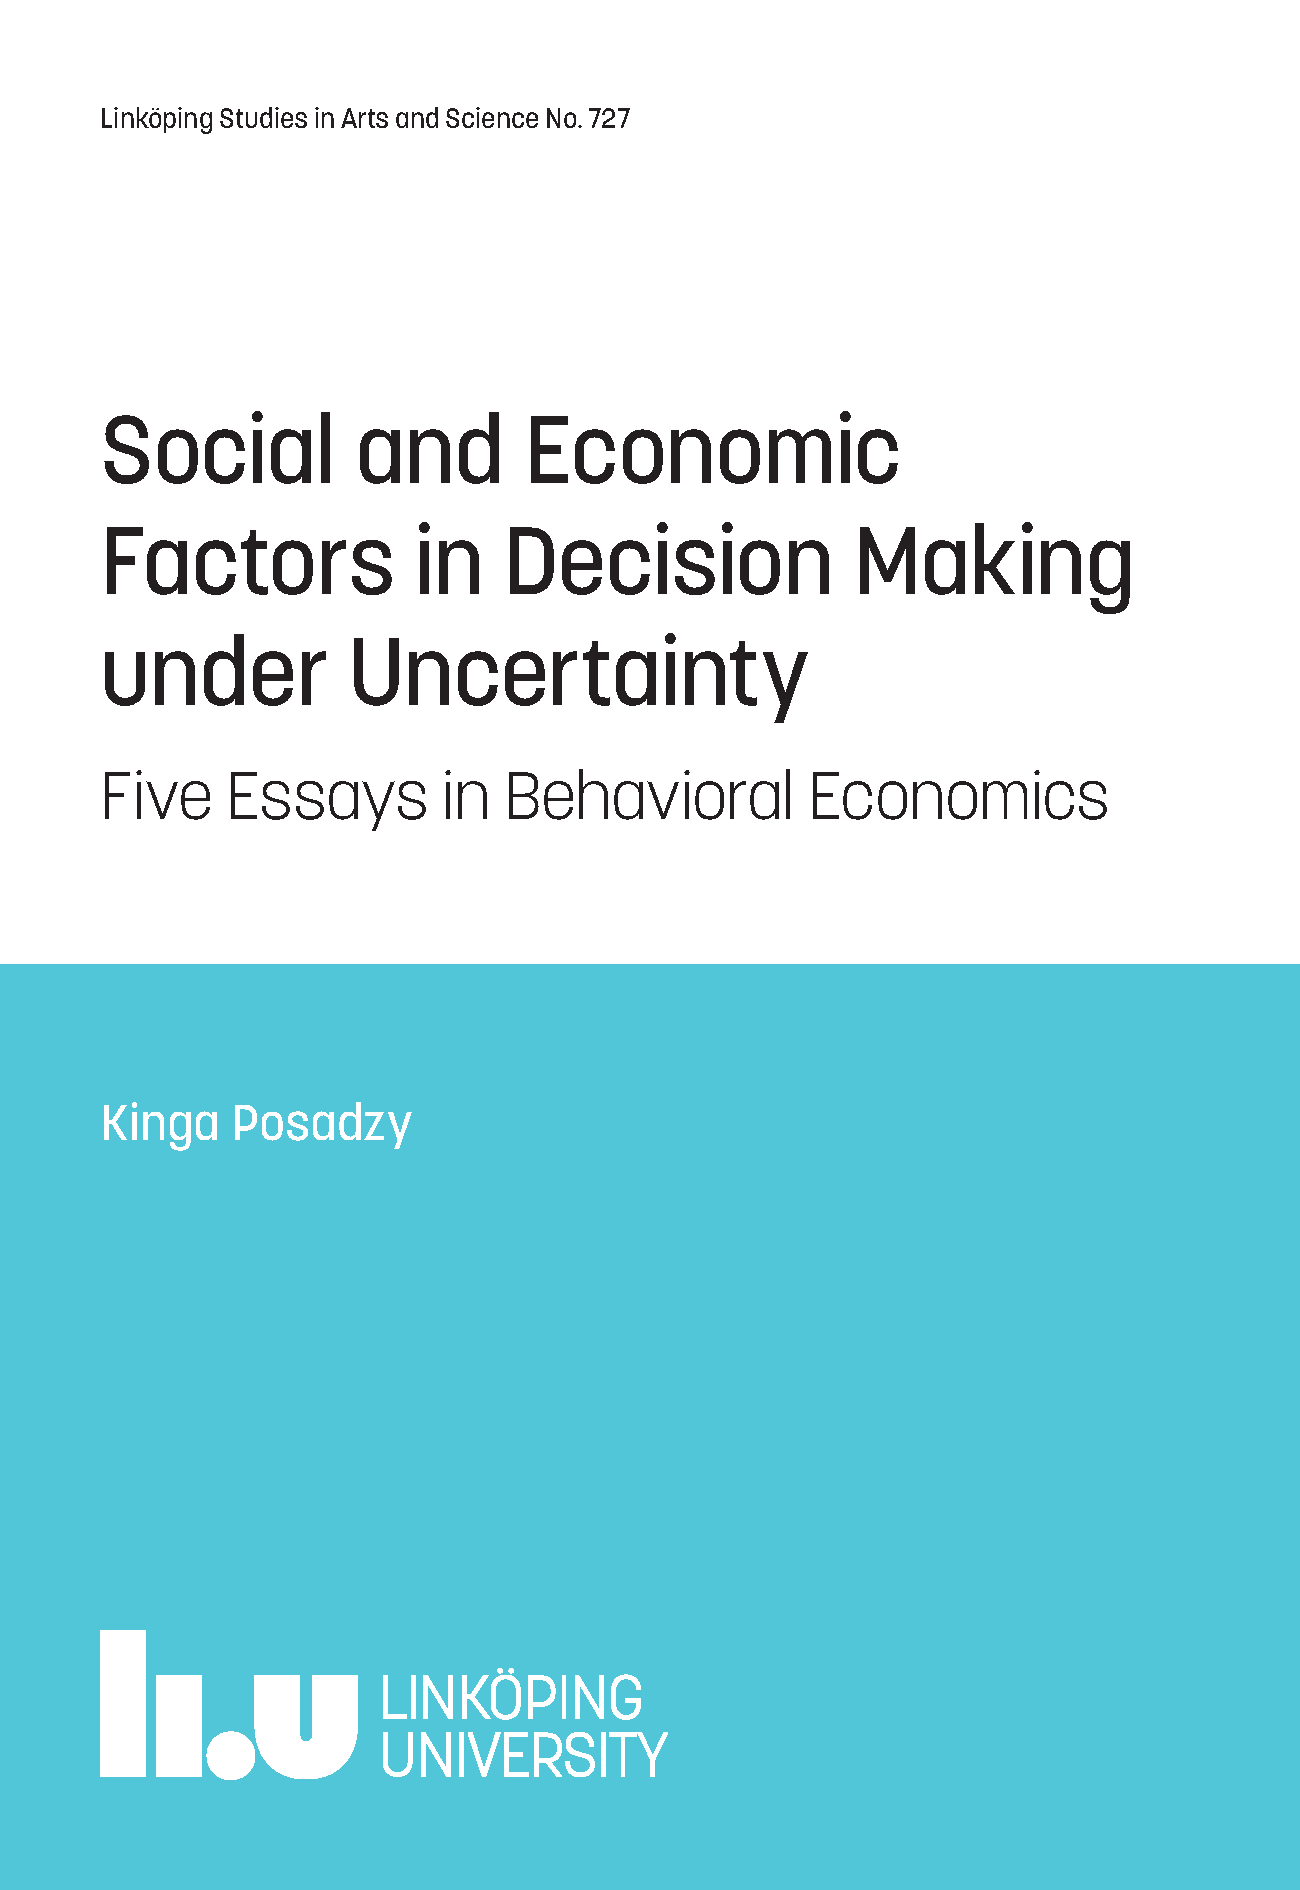 social and economic factors in decision making under uncertainty  social and economic factors in decision making under uncertainty five essays in behavioral economics